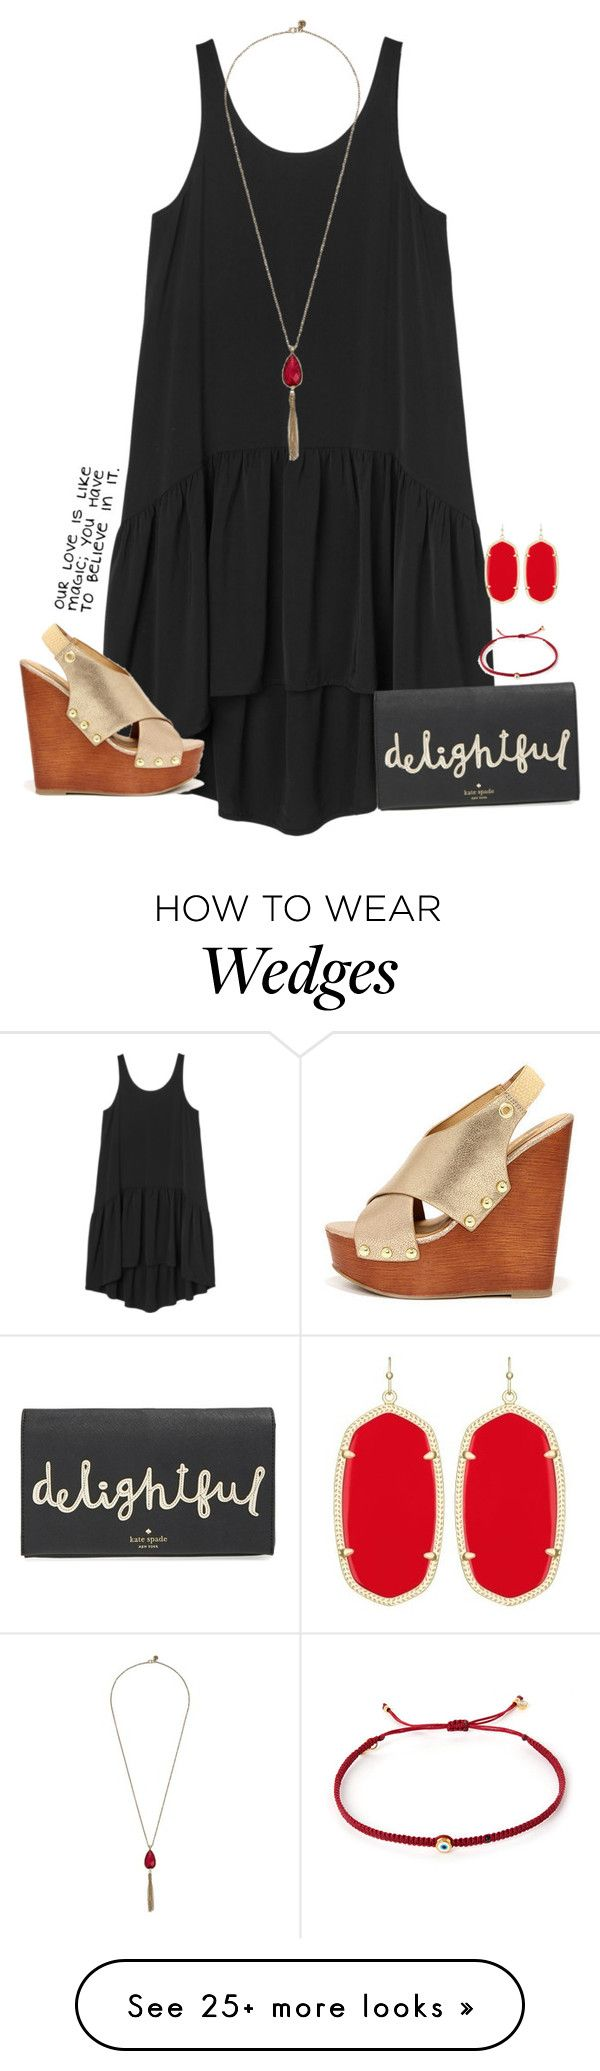 """""""my birthday is exactly a month from now!"""" by kaley-ii on Polyvore featuring Monki, The Sak, Soda, Kate Spade, Tai and Kendra Scott"""